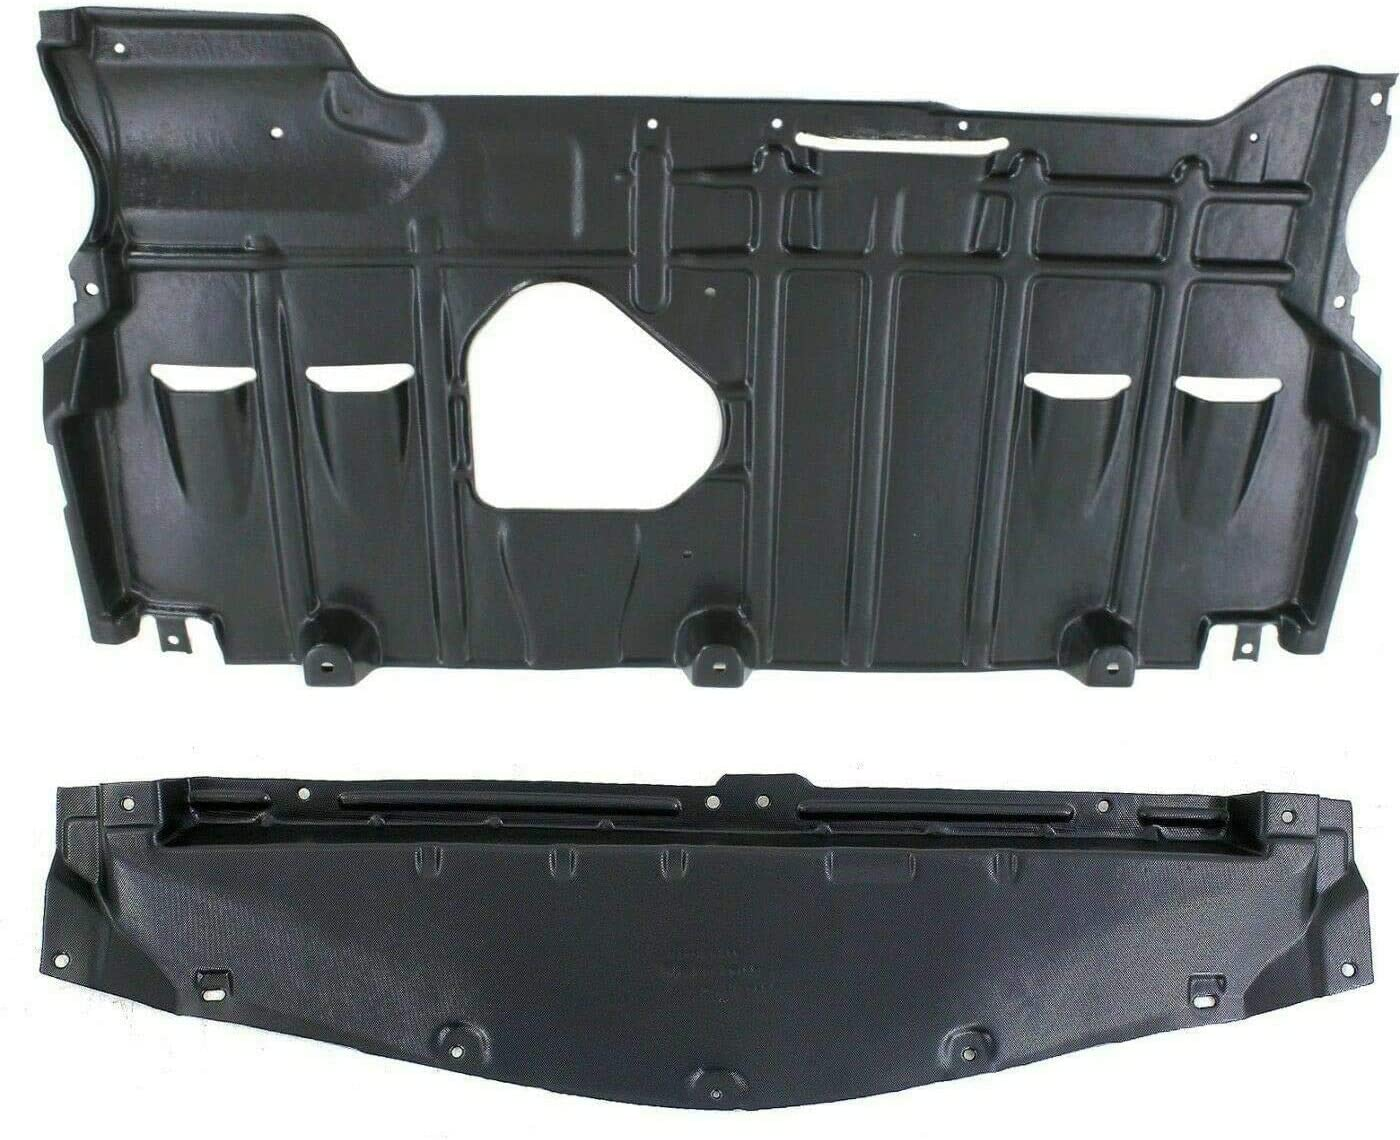 Autoelementss New Set of 2 Front /& Rear Engine Splash Shield Under Cover Plastic for 2010-2013 Mazda 3 Manual 5 Speed Transmission Models Direct Replacement BBM456112E BBM456110C